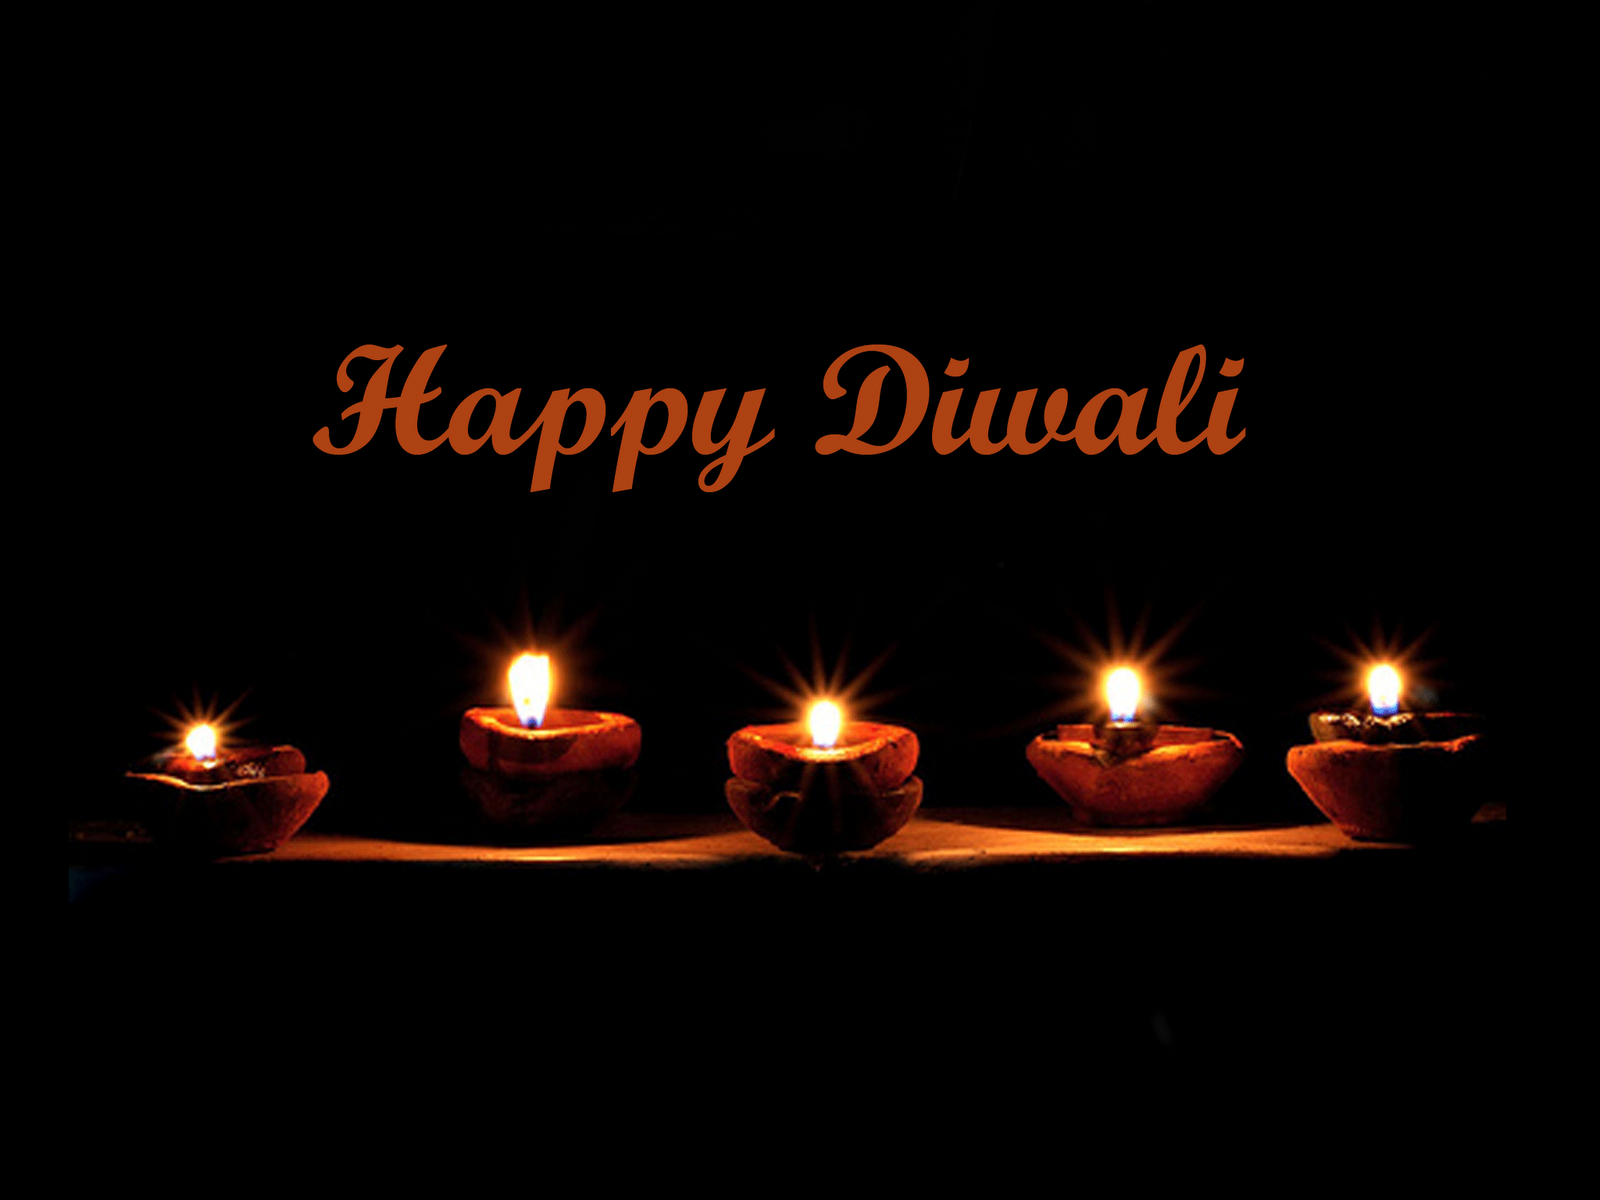 Diwali Whatsapp DP Images and Phots